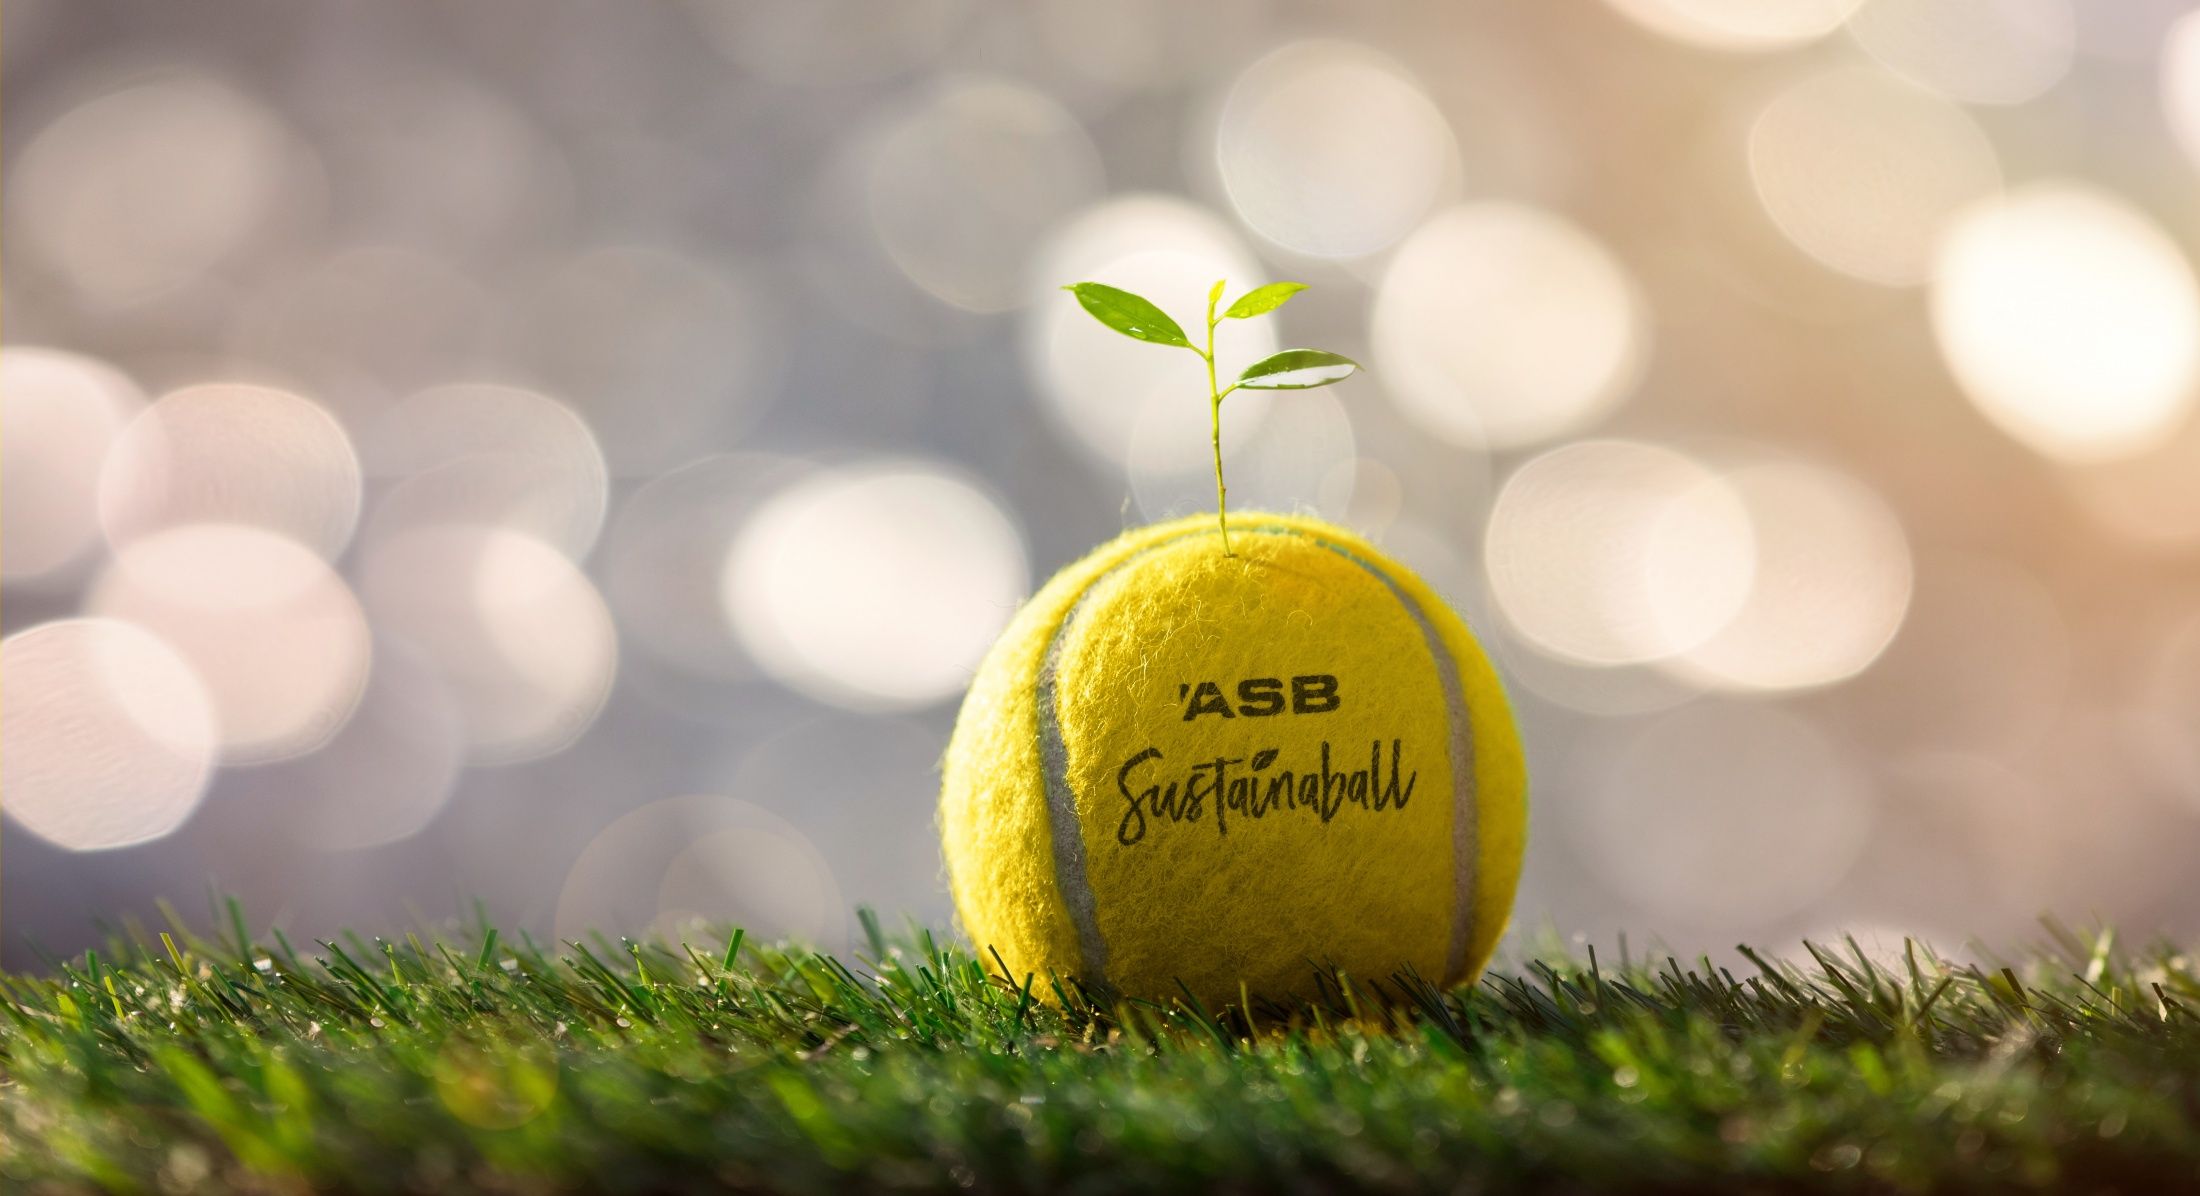 Thumbnail for Sustainaball - A biodegradable tennis ball that plants a tree.